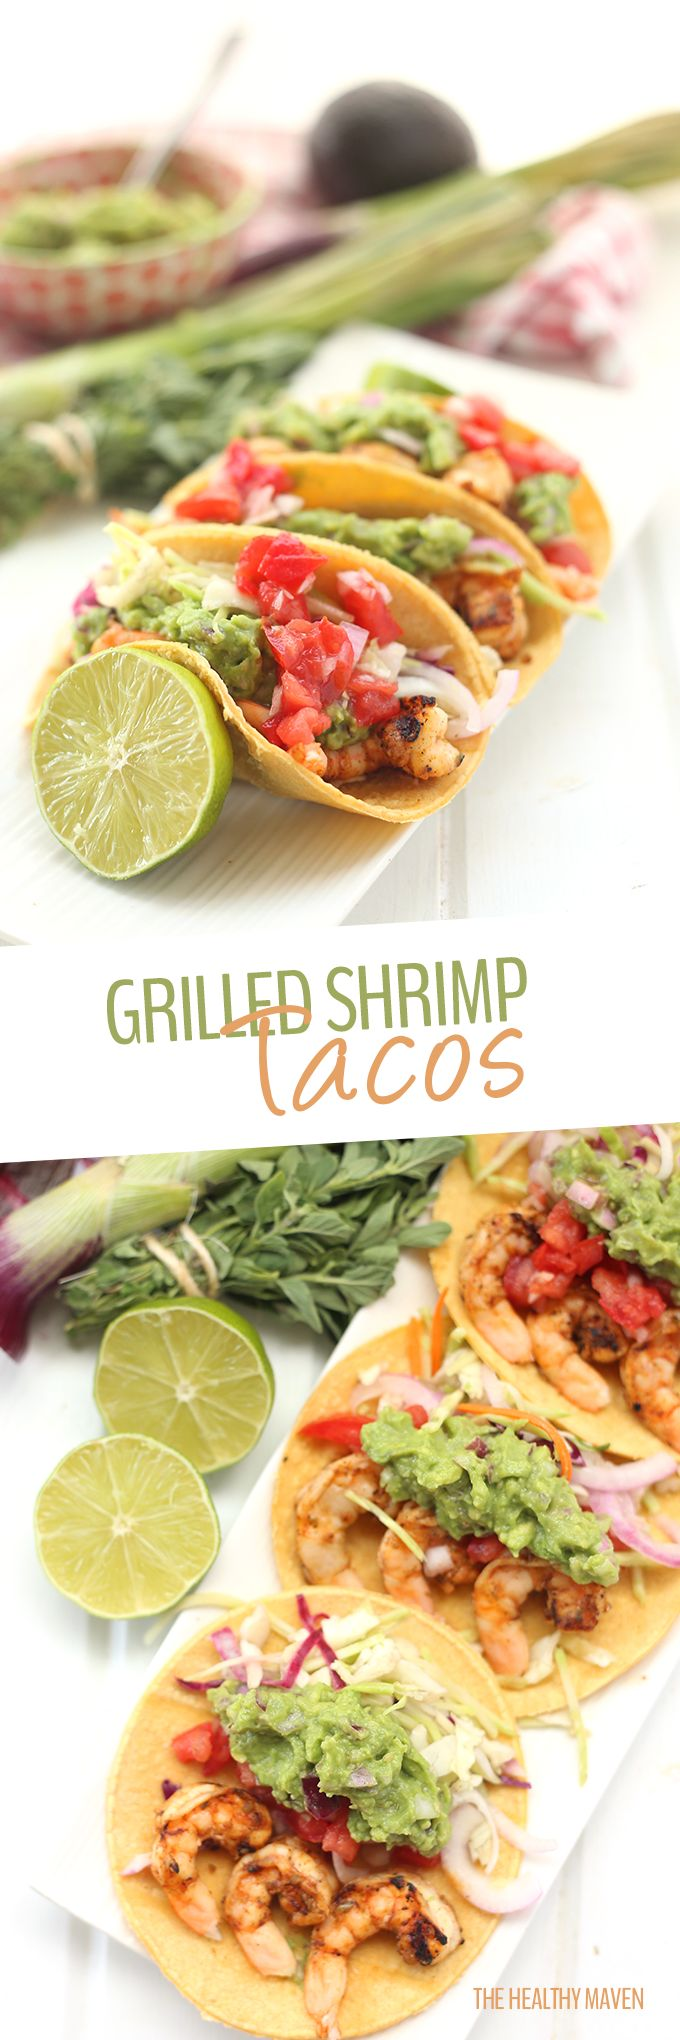 Summer calls for grills, shrimp and tacos galore! Make it Mexican night with these Spicy Grilled Shrimp Tacos with all the fixins for your next summer bbq or party! No one will believe you that they're healthy too!